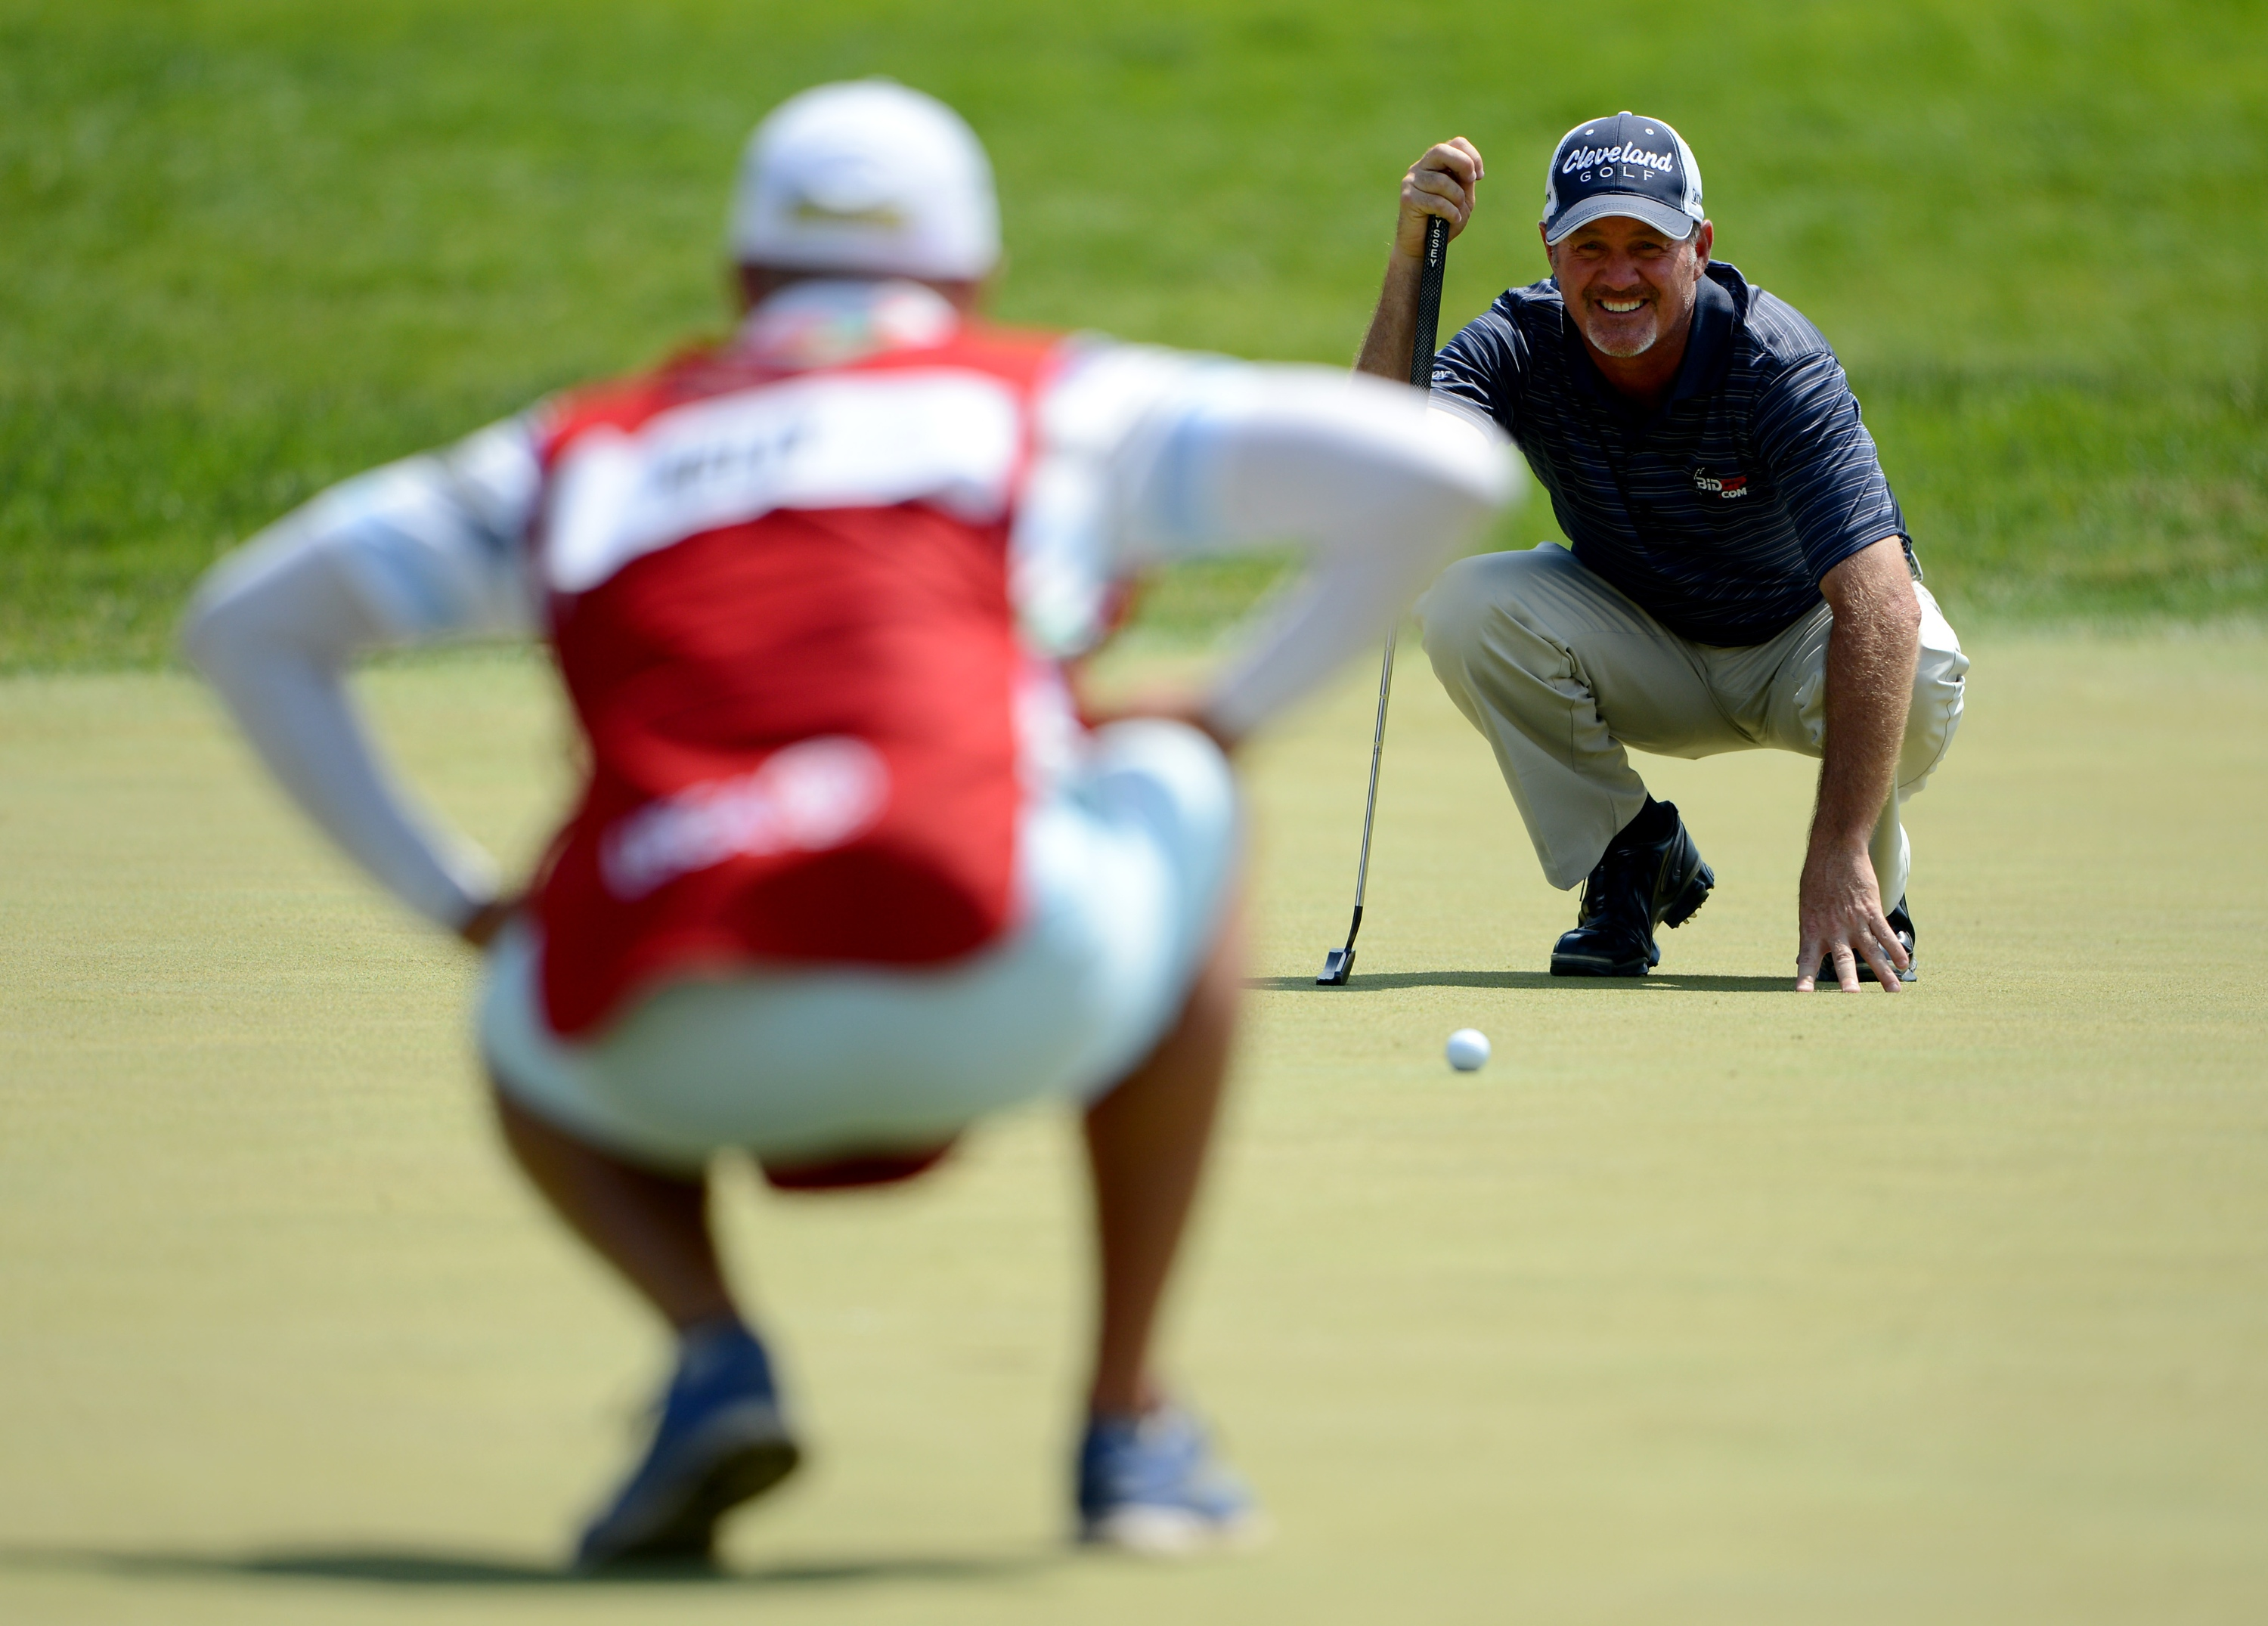 http://media.zenfs.com/en_us/News/gettyimages.com/u-open-round-three-20130615-212035-912.jpg